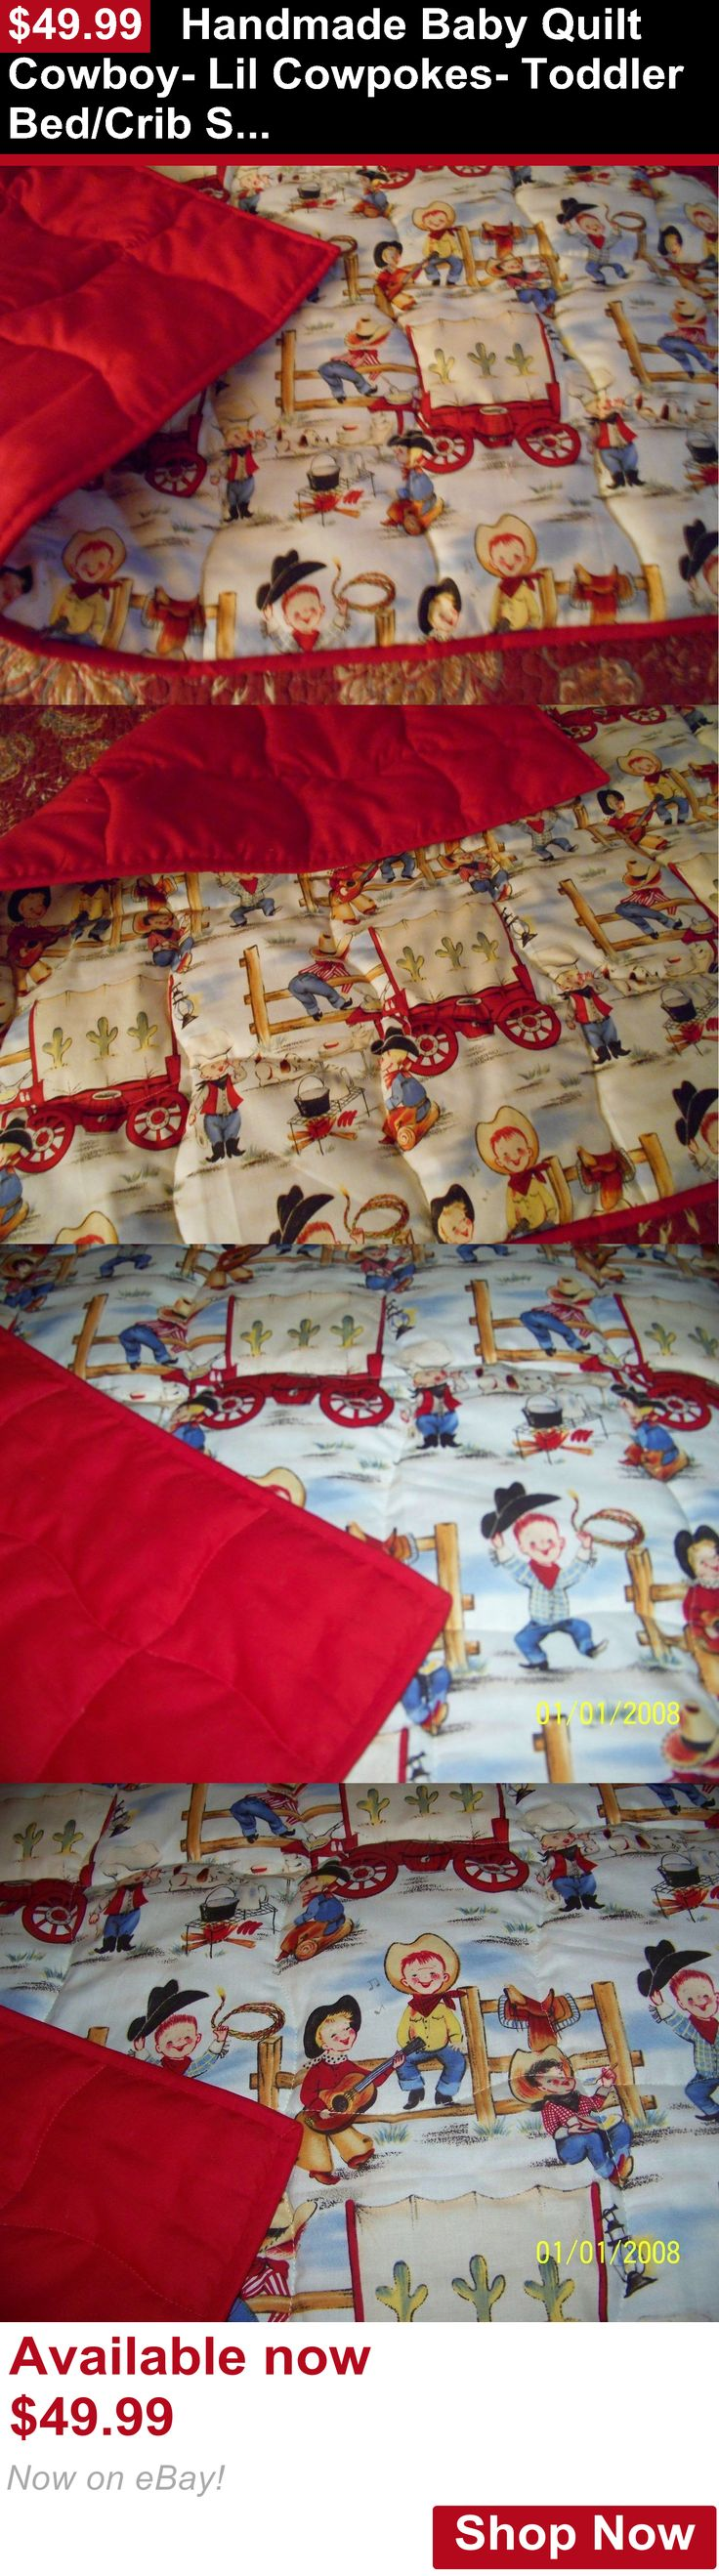 Quilts And Coverlets: Handmade Baby Quilt Cowboy- Lil Cowpokes- Toddler Bed/Crib Size Quilt Comforter BUY IT NOW ONLY: $49.99